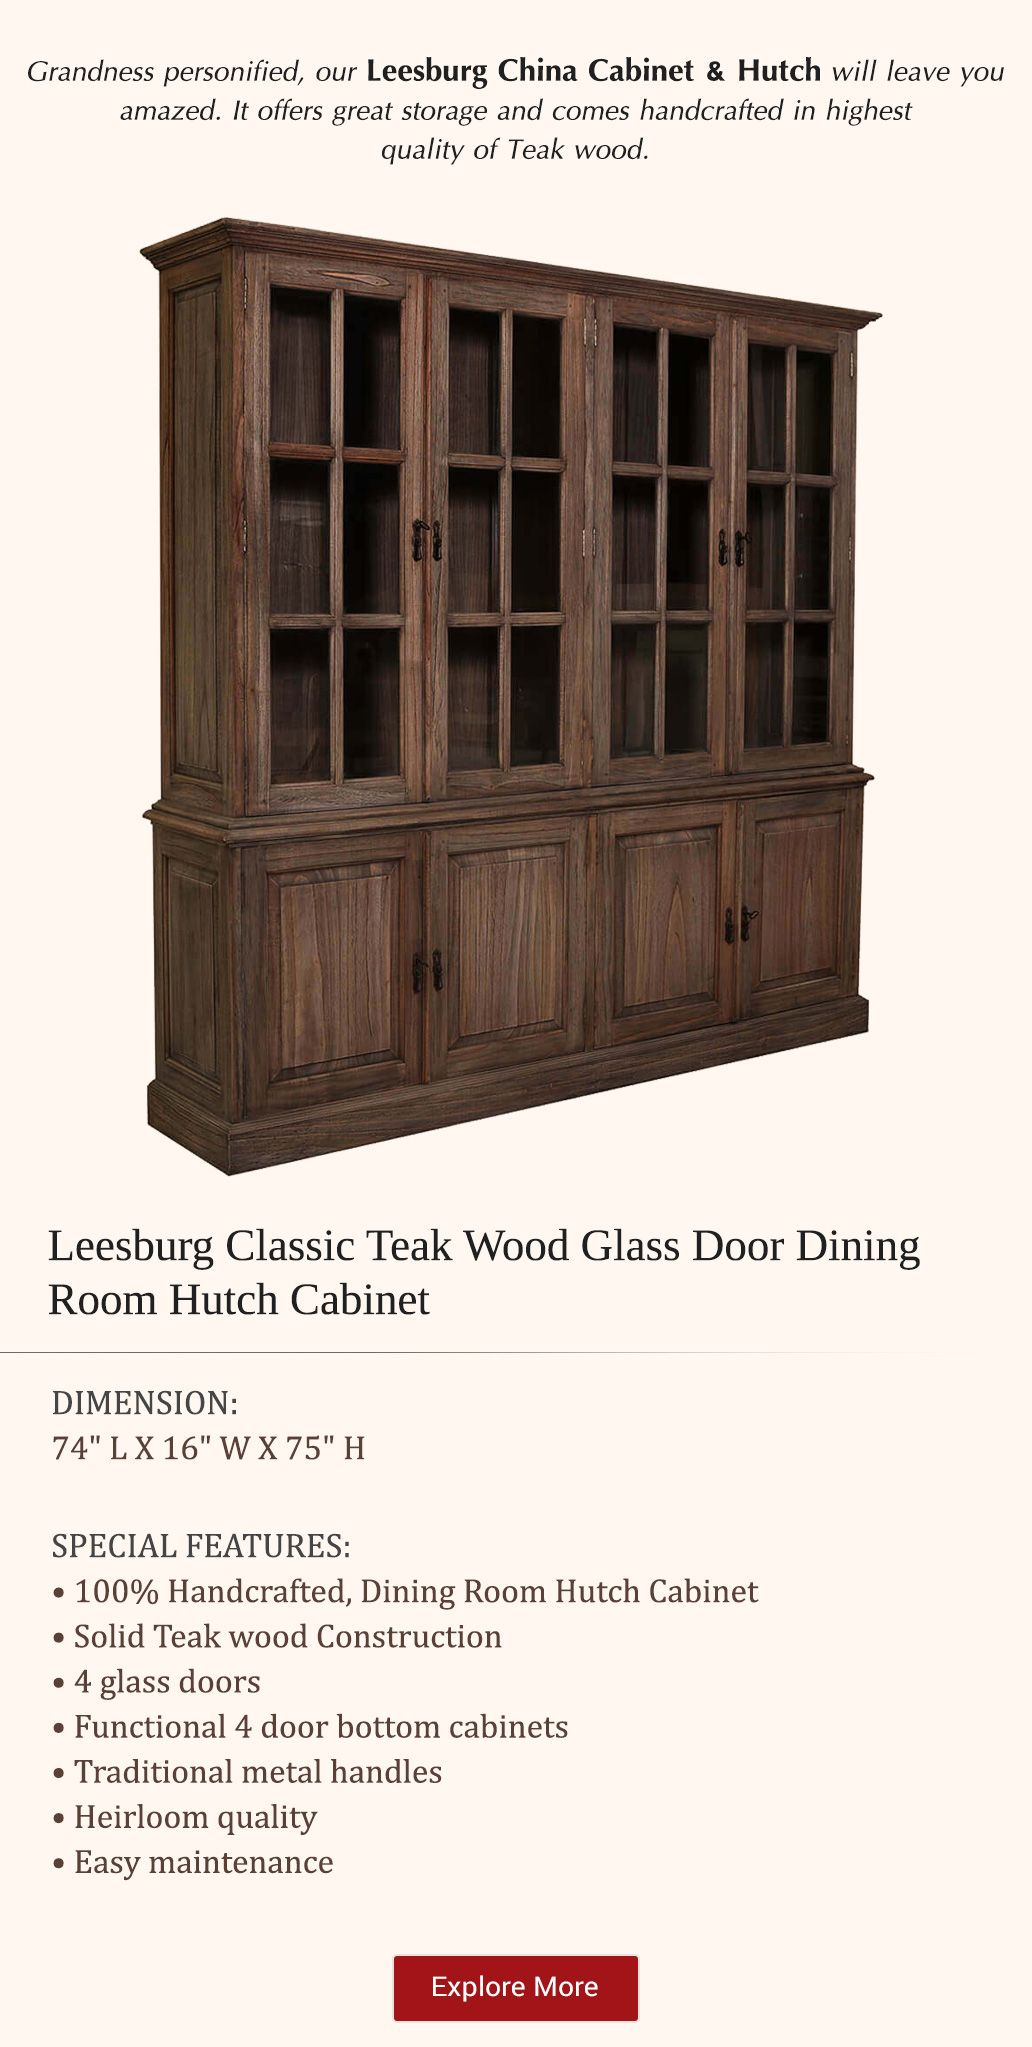 Pin On Home Goodies, Teak Dining Room Hutch